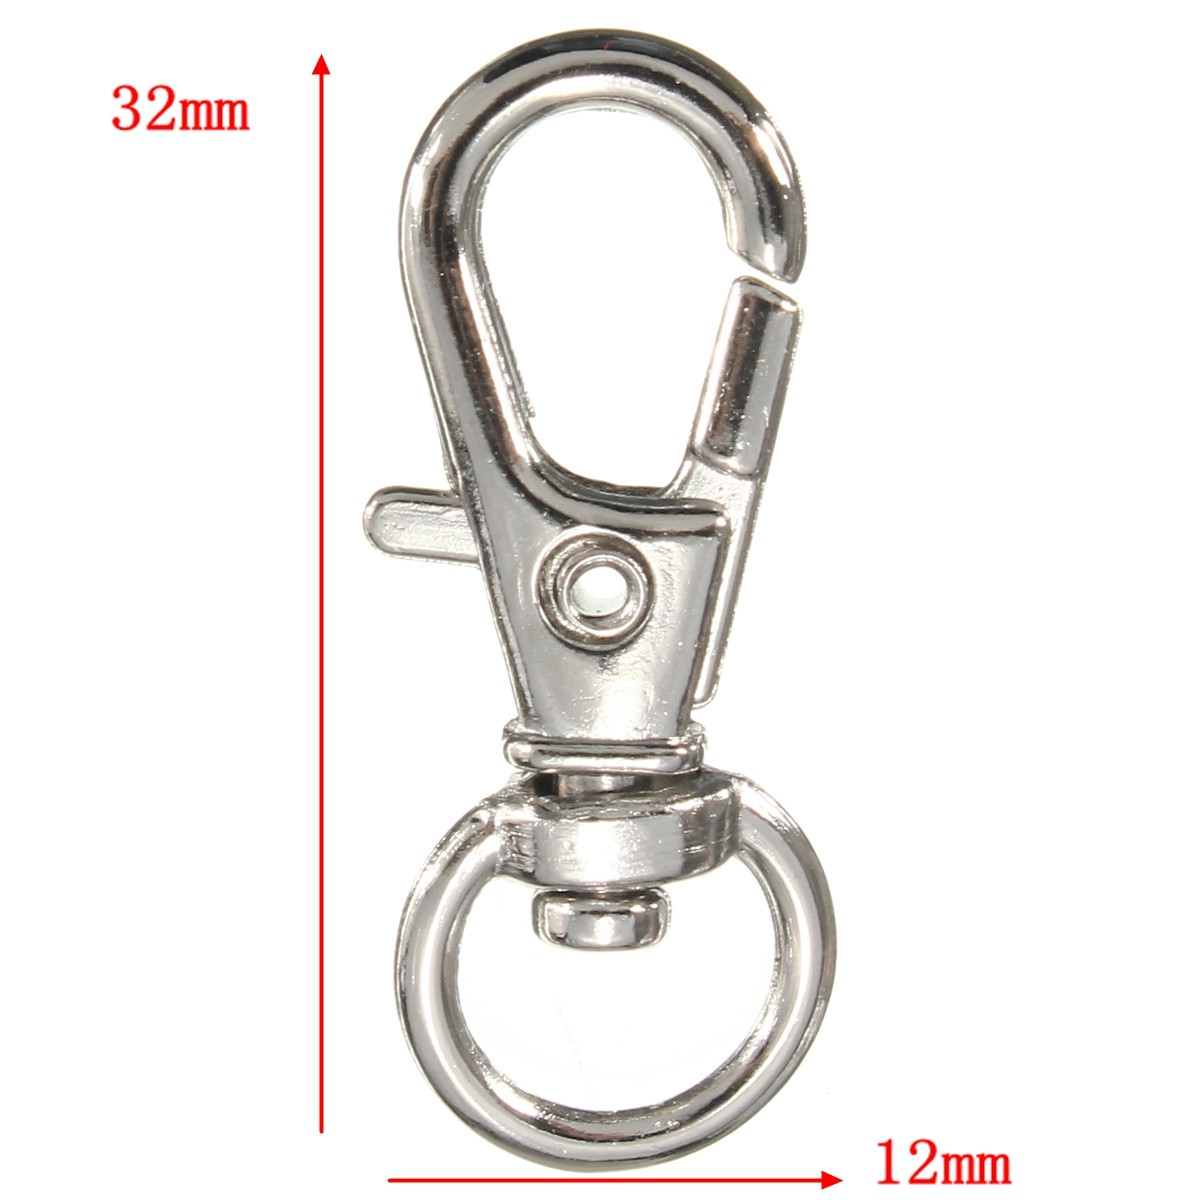 10Pcs 30x10mm Silver Copper Plated Lobster Clasp Keychain Snap Hook Lobster Clasps Hooks